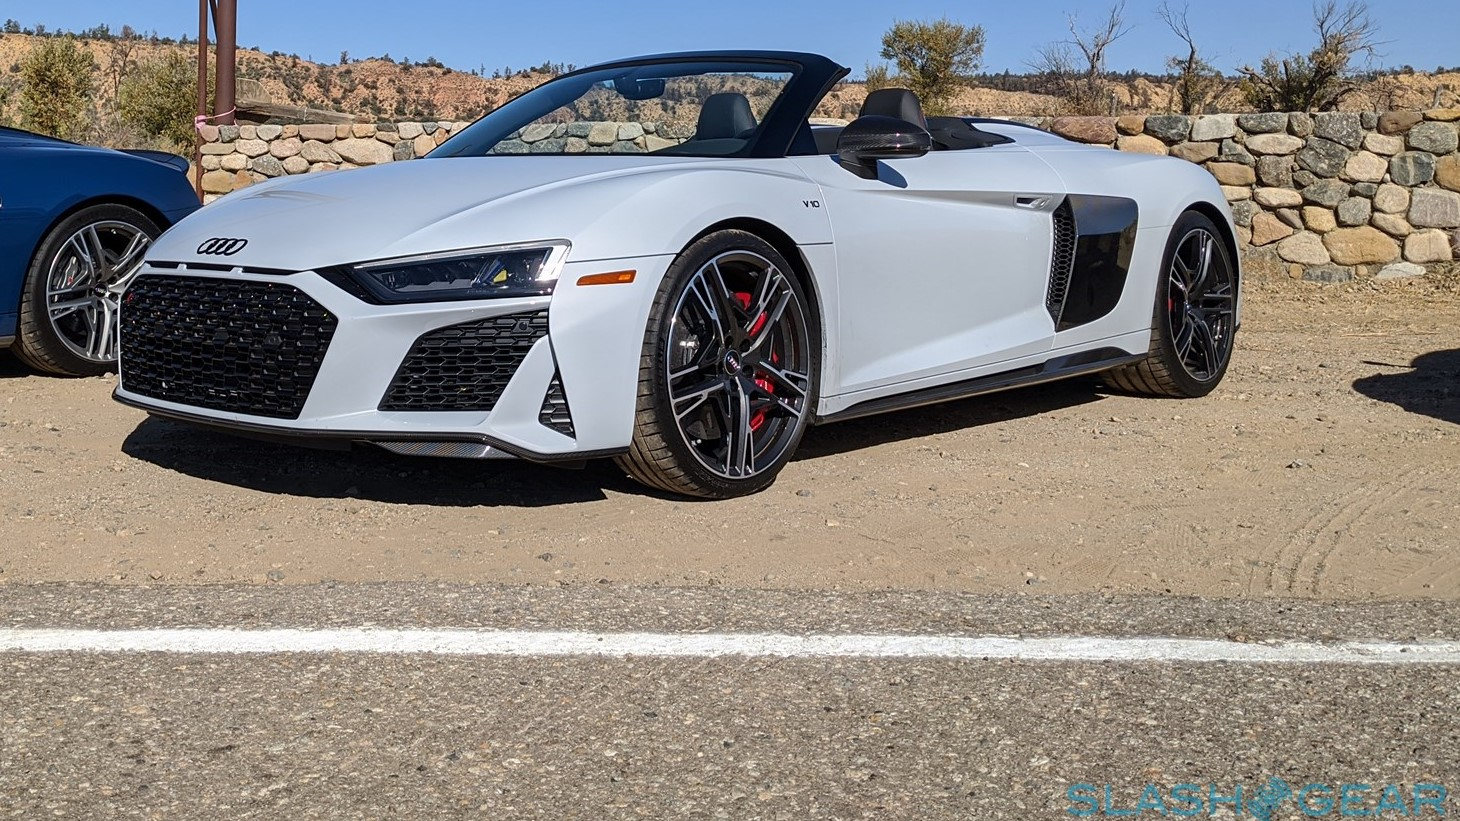 2020 Audi R8 V10 Performance Coupe And Spyder First Drive Review A Fast Goodbye Slashgear